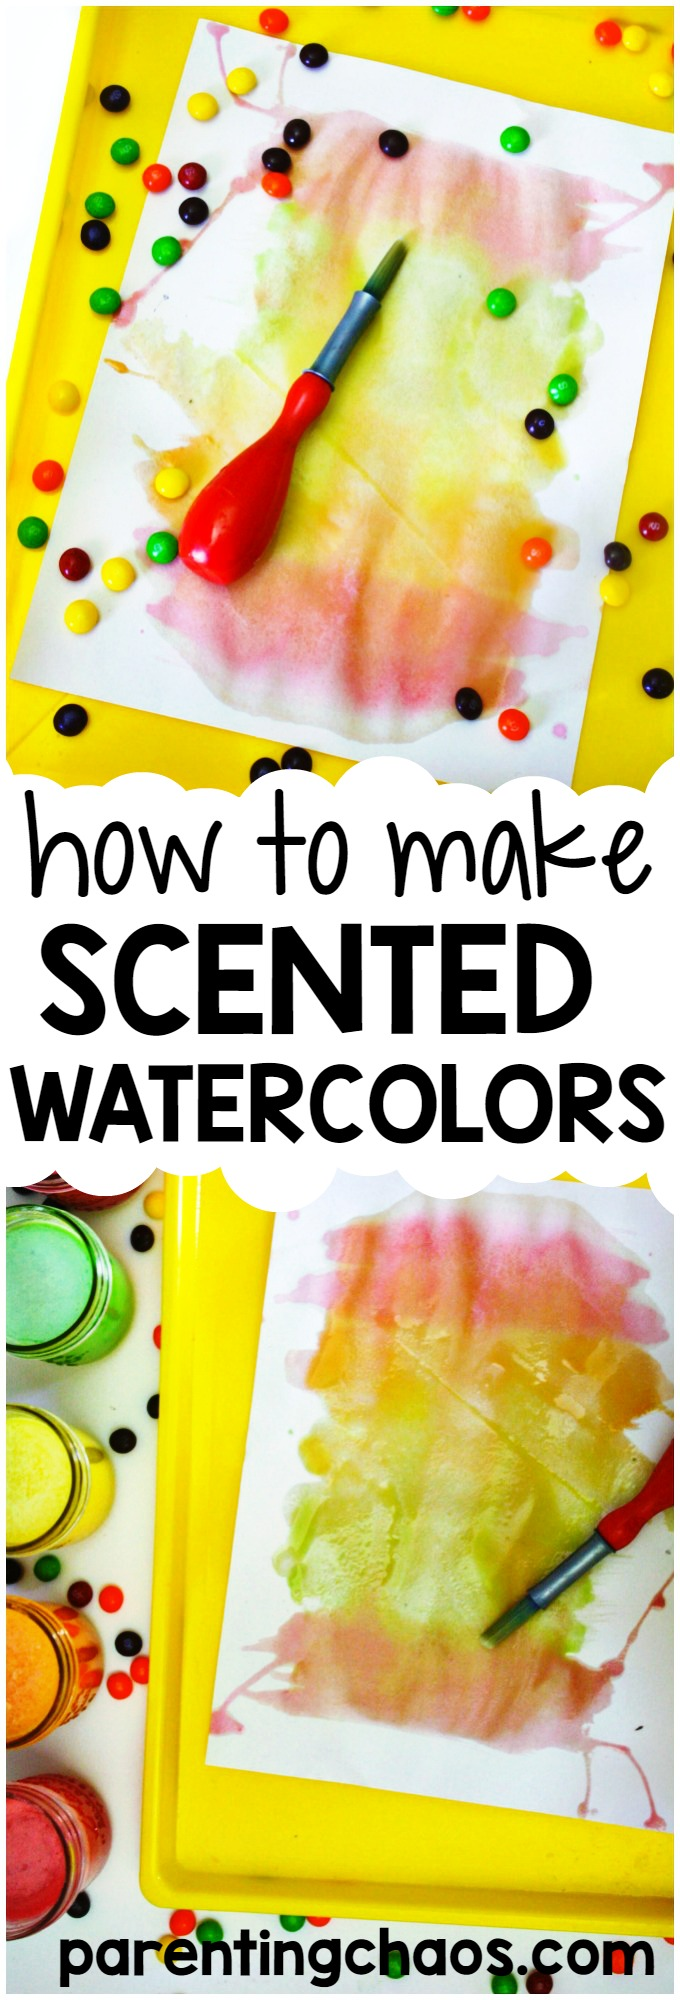 Make scented watercolors at home with these simple DIY Skittles Candy Paint! My kids loved playing with this scratch-n-sniff-paint!